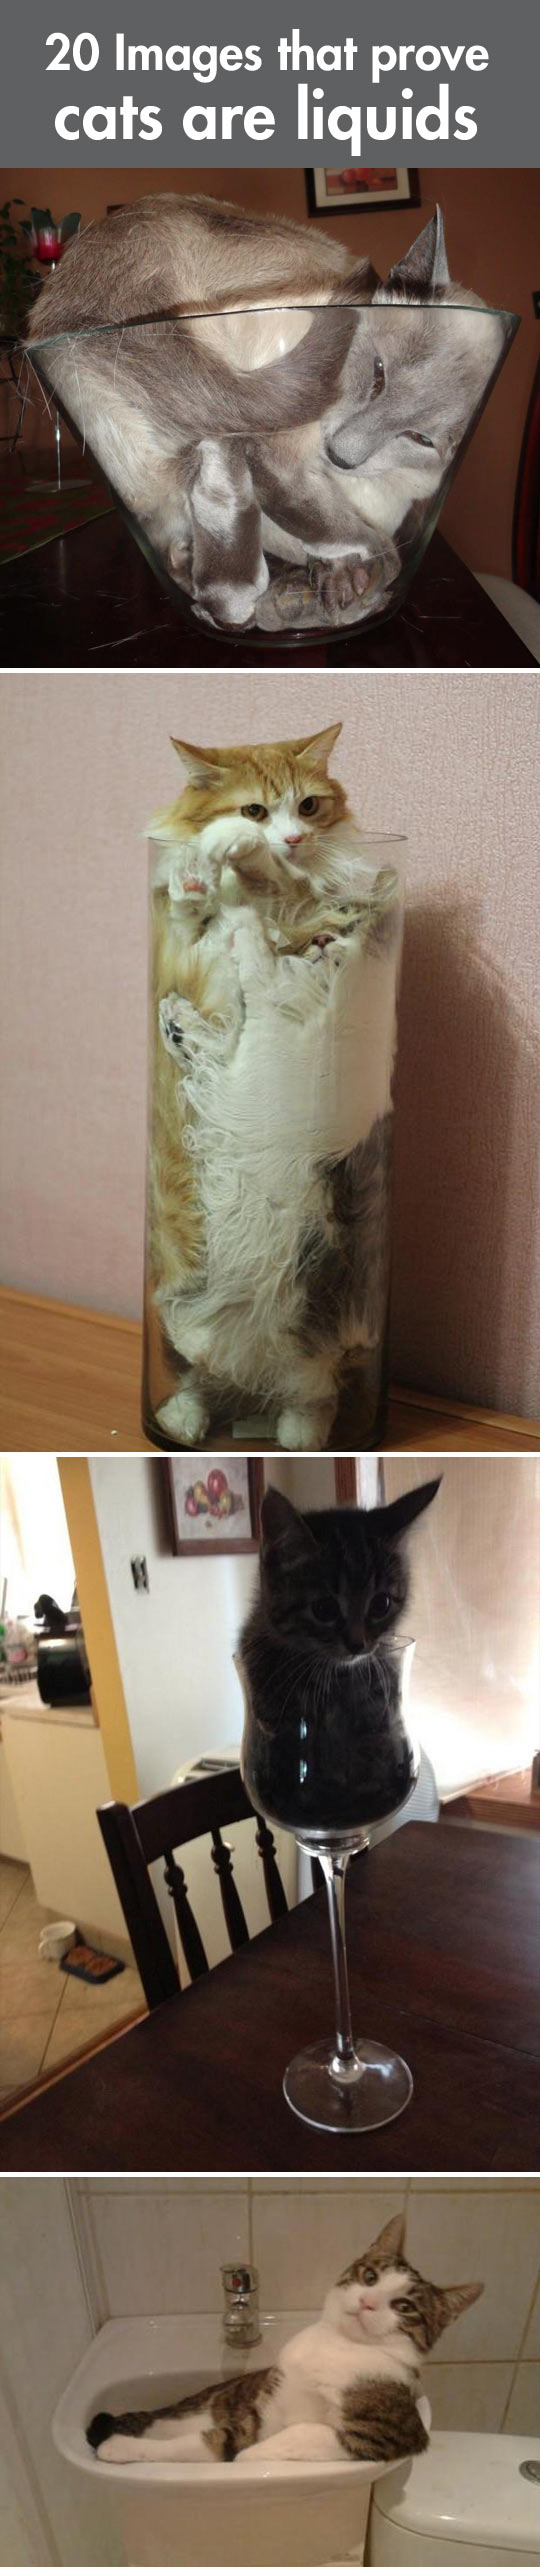 Why cats are liquids...